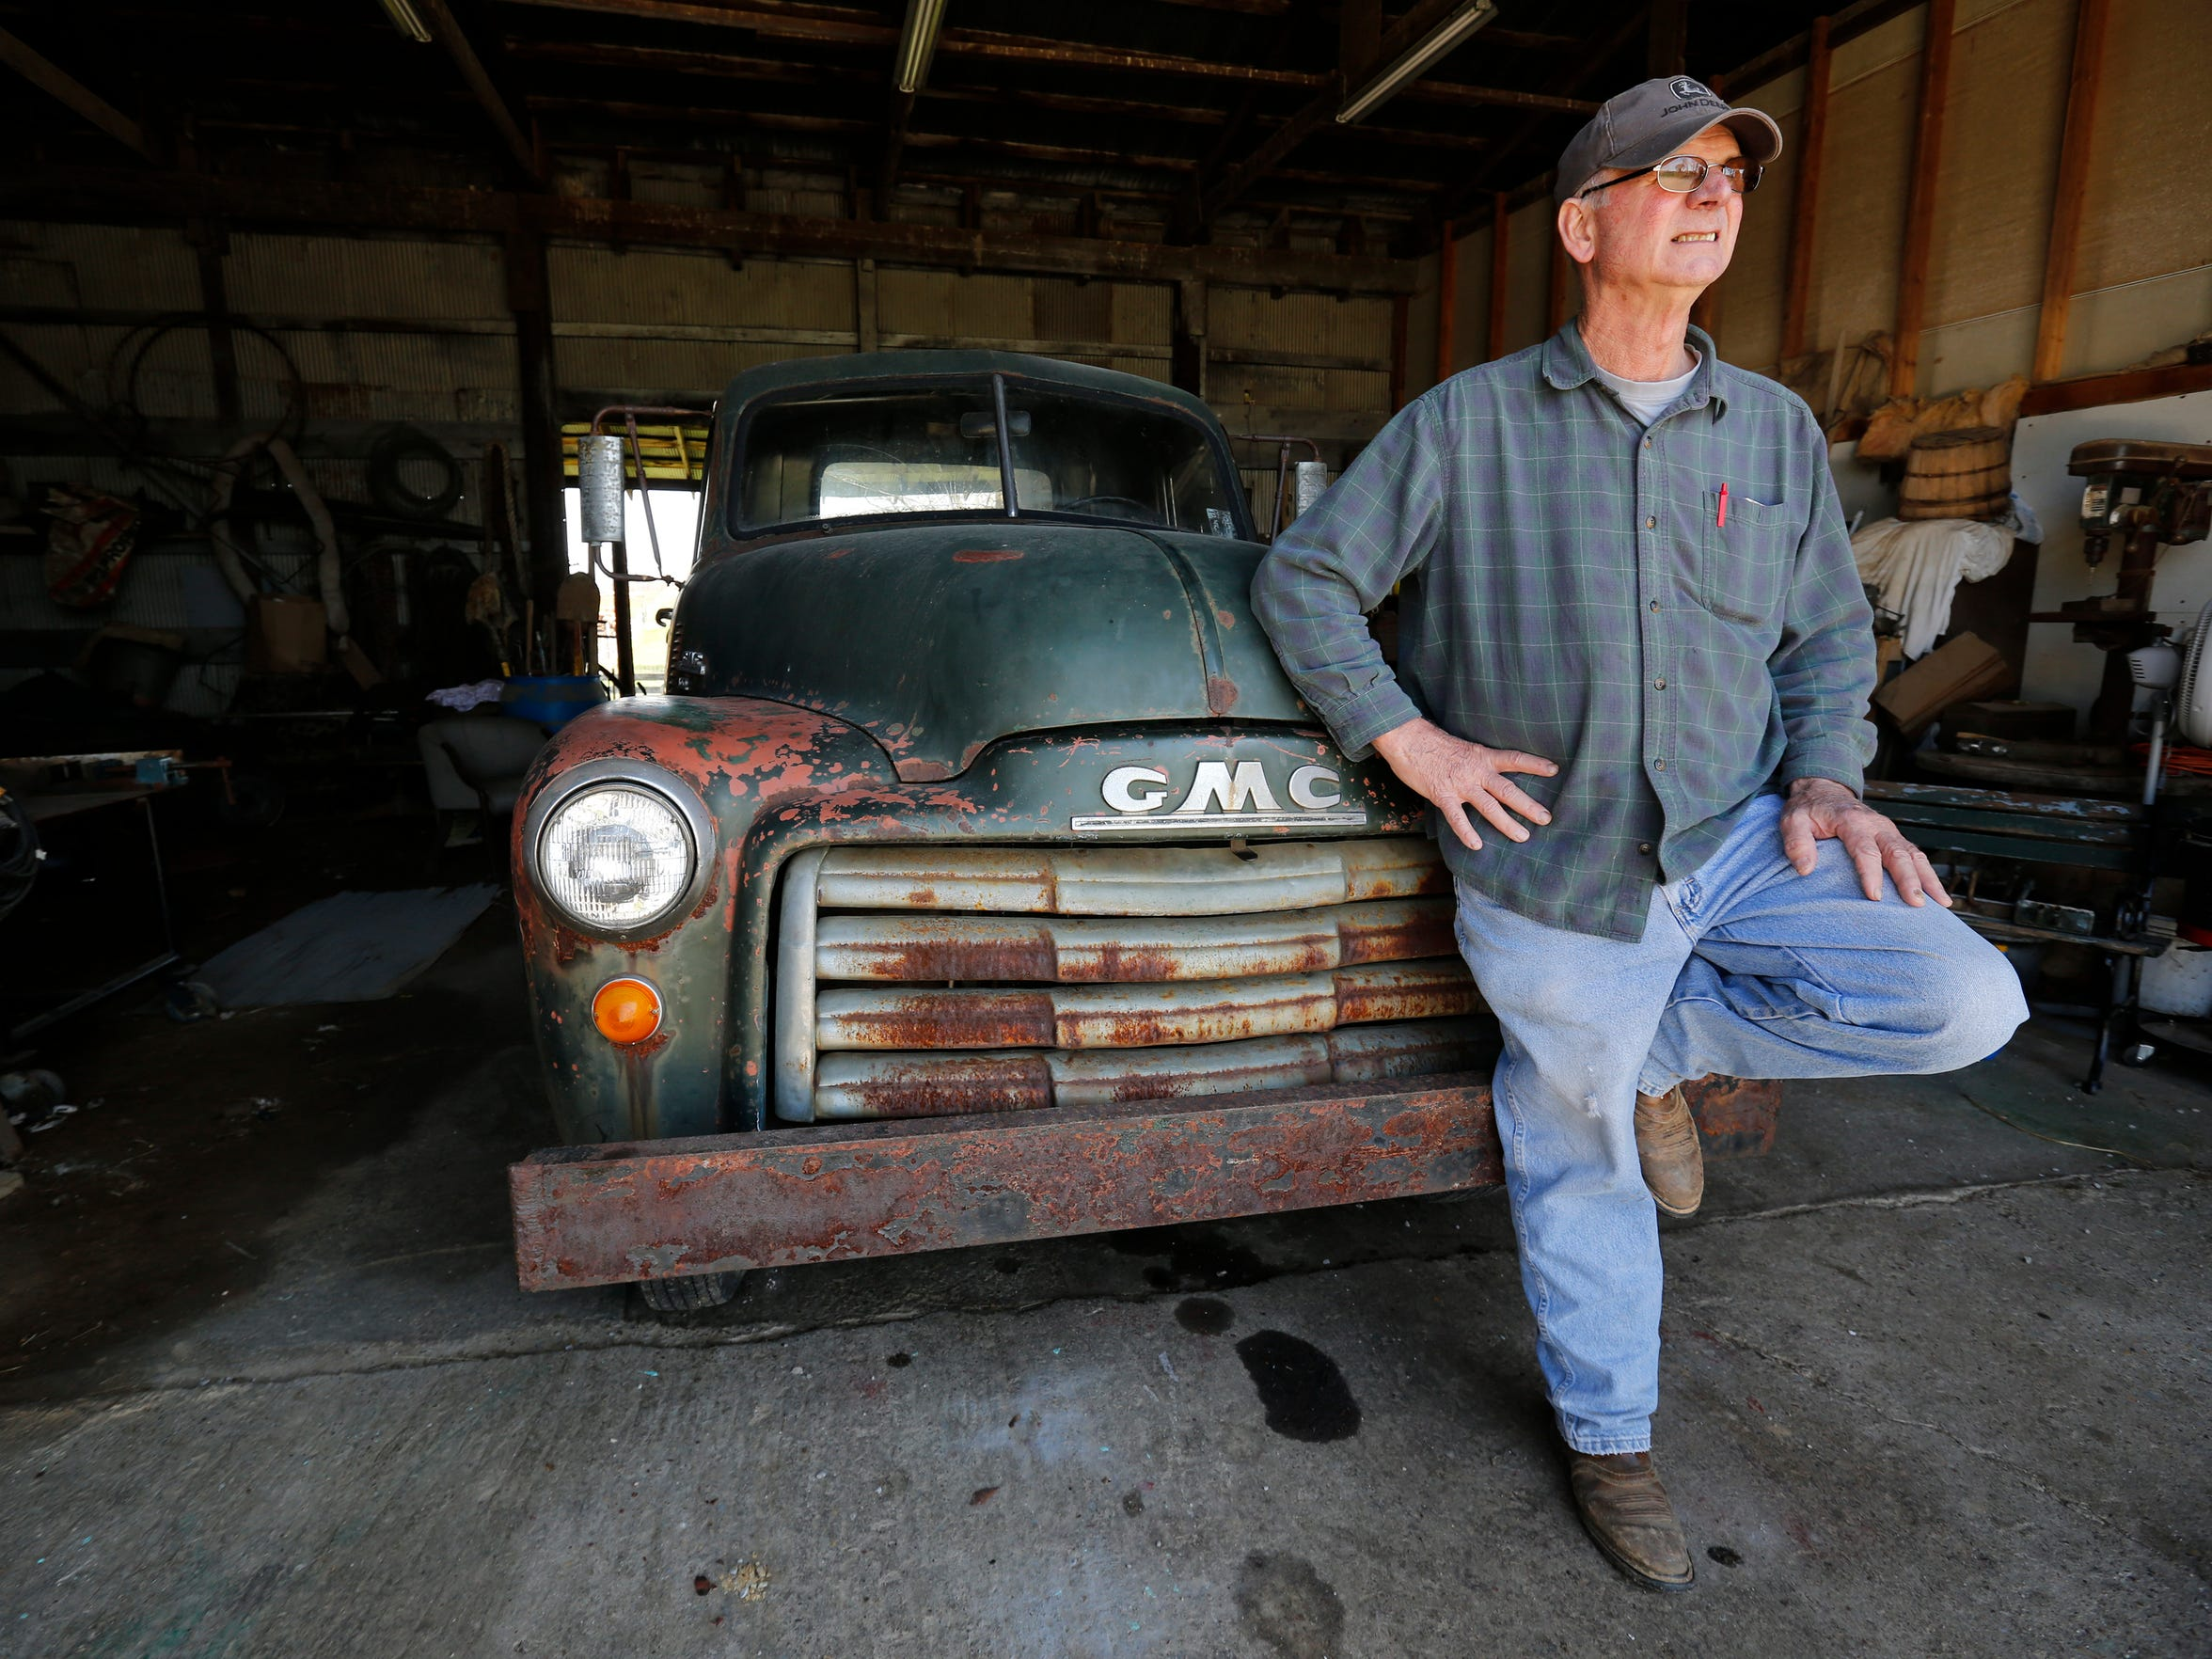 Mike Myers' family has lived on the same farm in Utica, Ind., for more than 100 years. Interstate 265 in conjunction with the new East End bridge has taken 15 acres of his land.